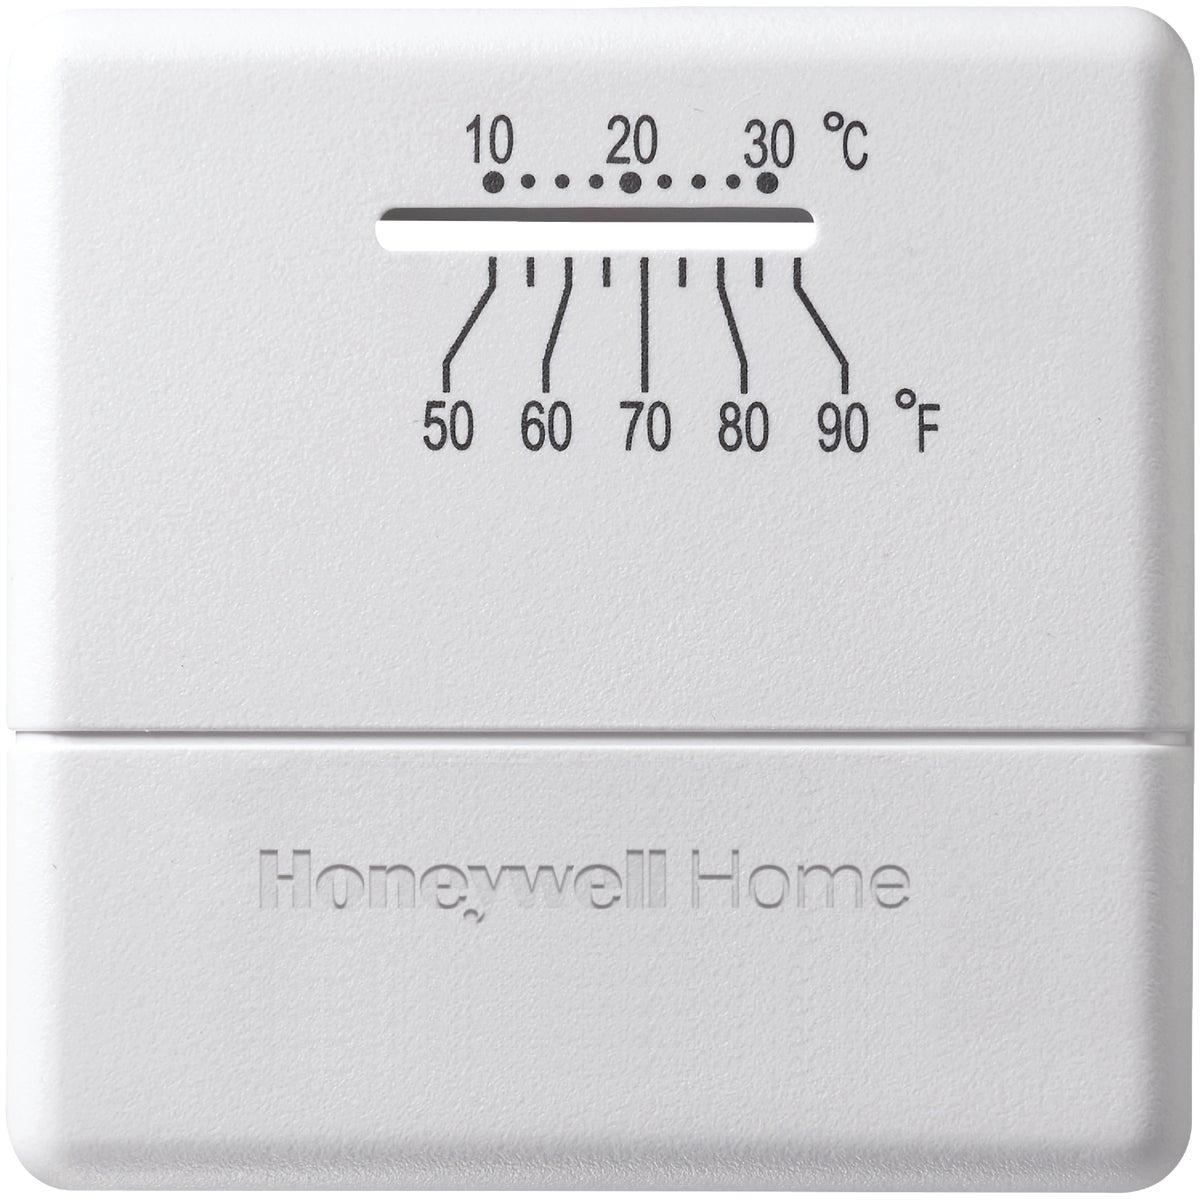 ECONOMY HEAT THERMOSTAT - YCT30A1003 by Honeywell Internatl